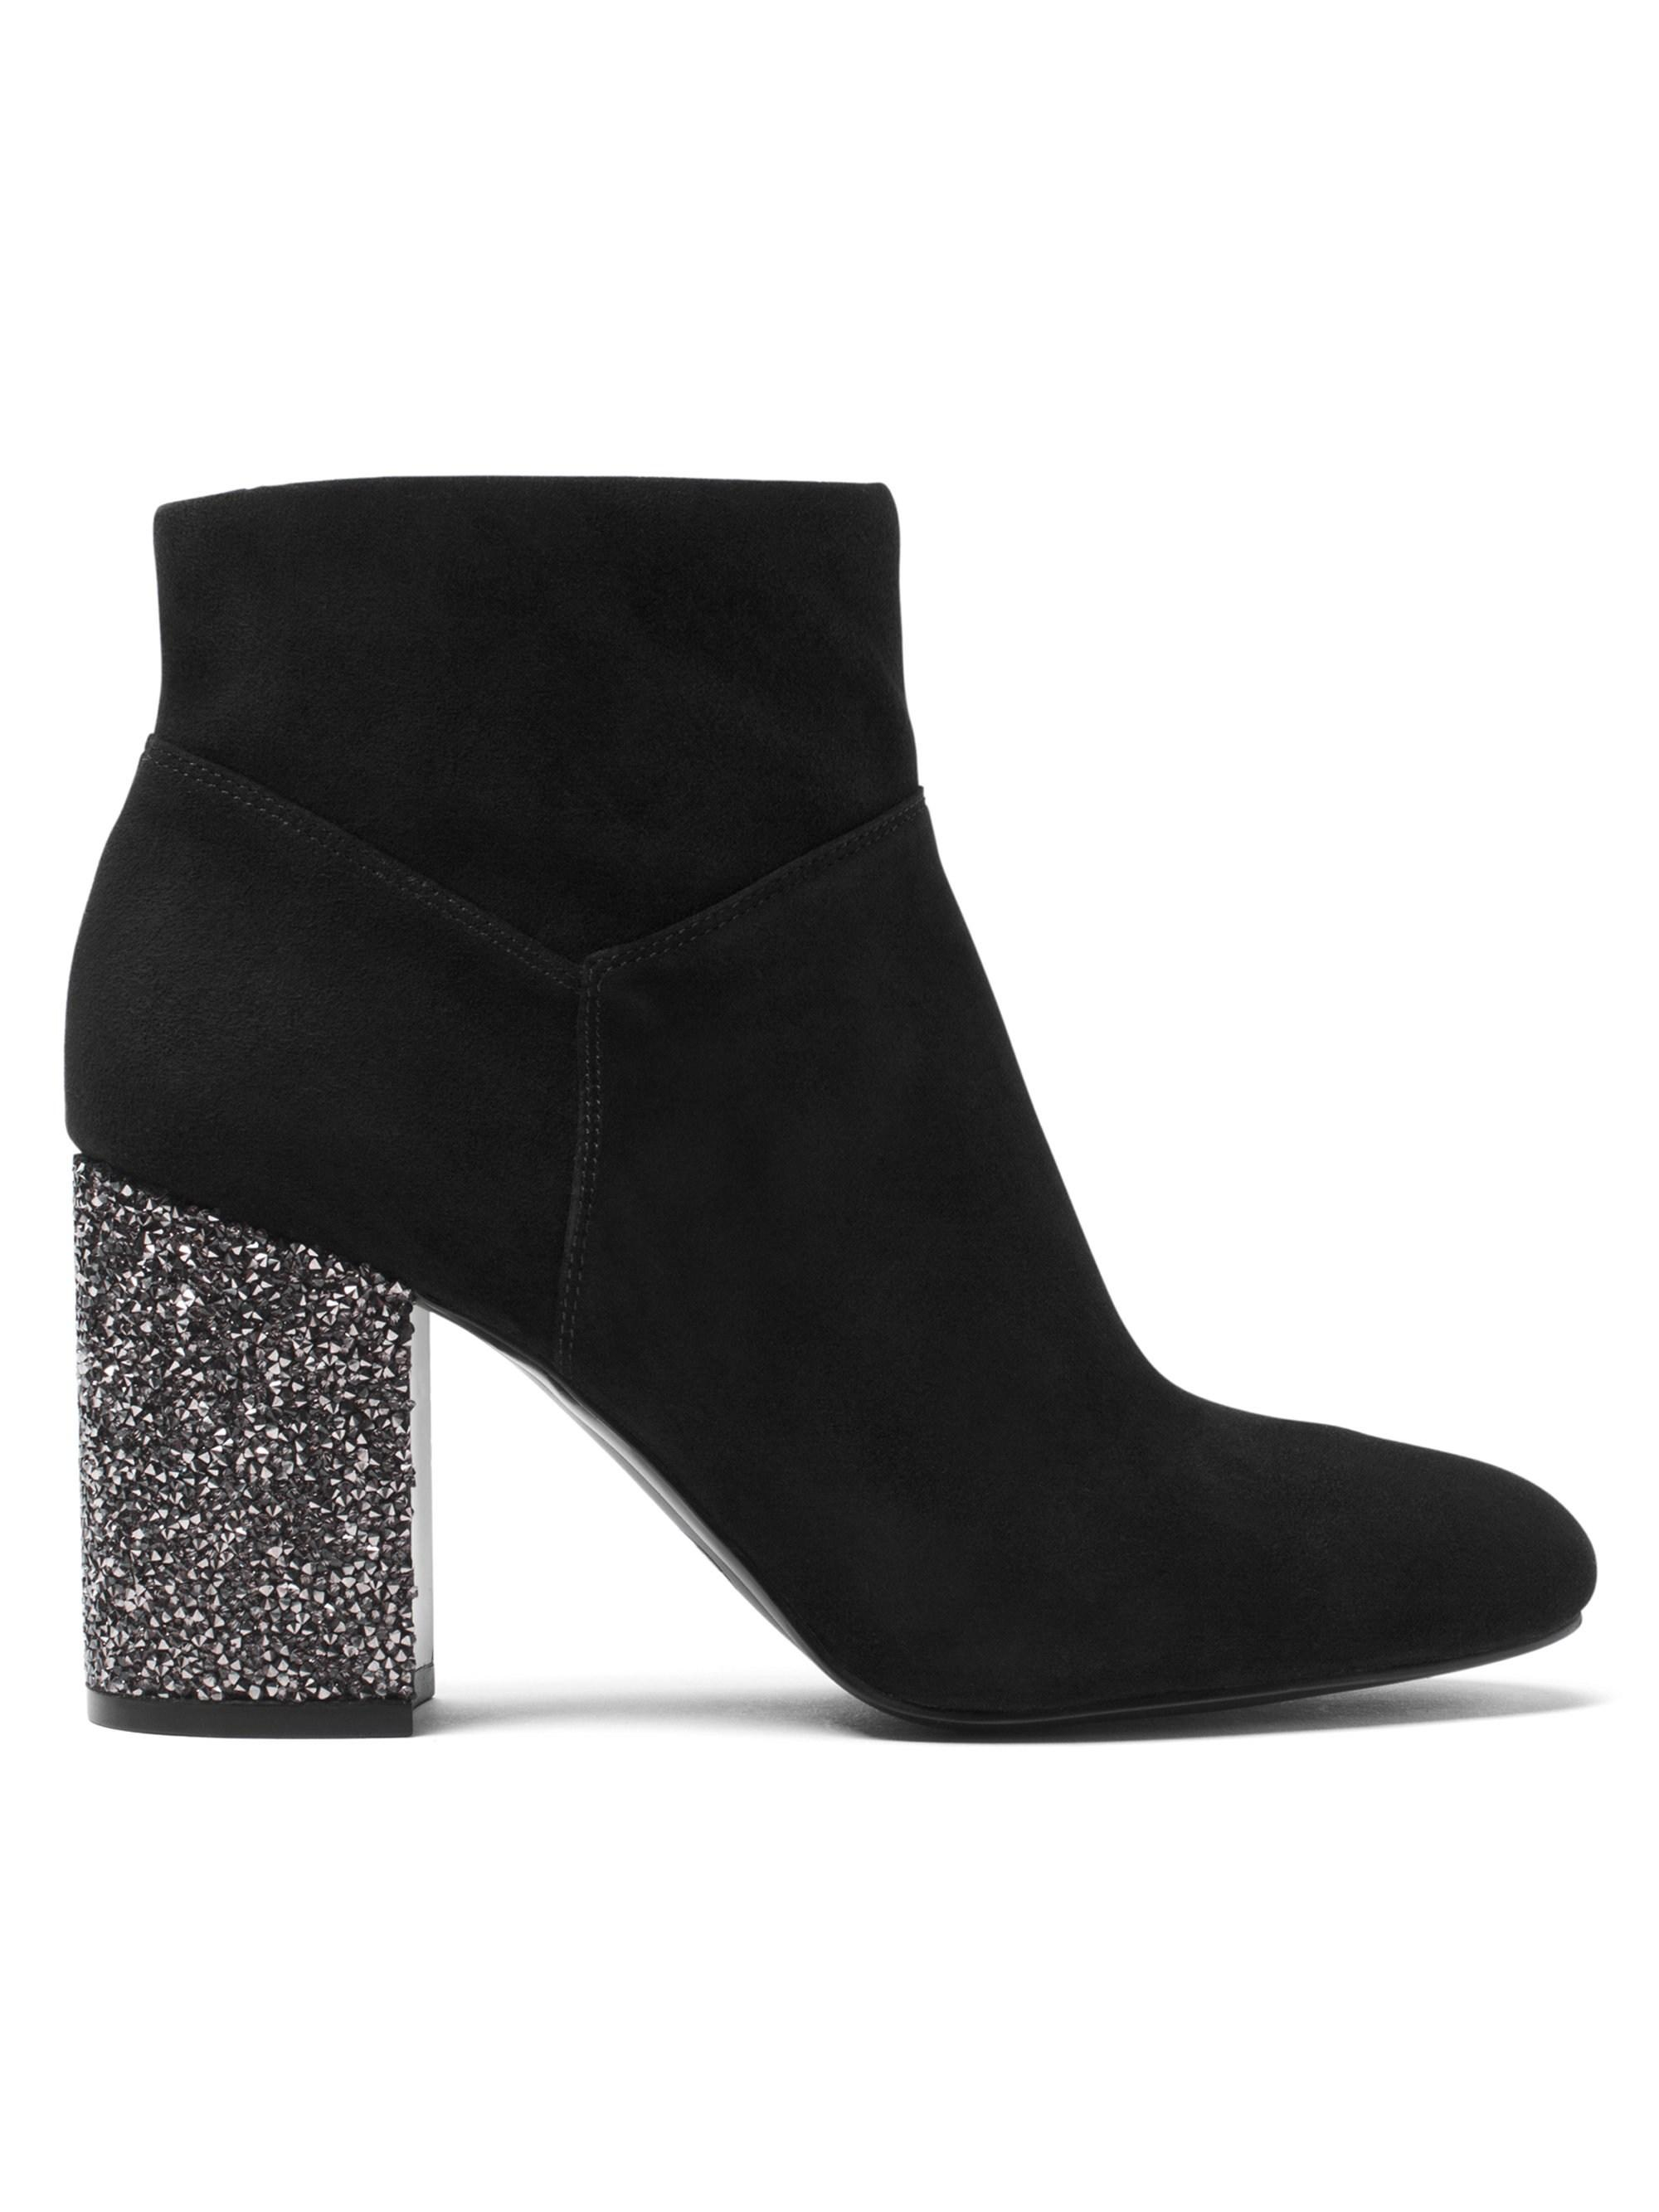 black boots with glitter heel